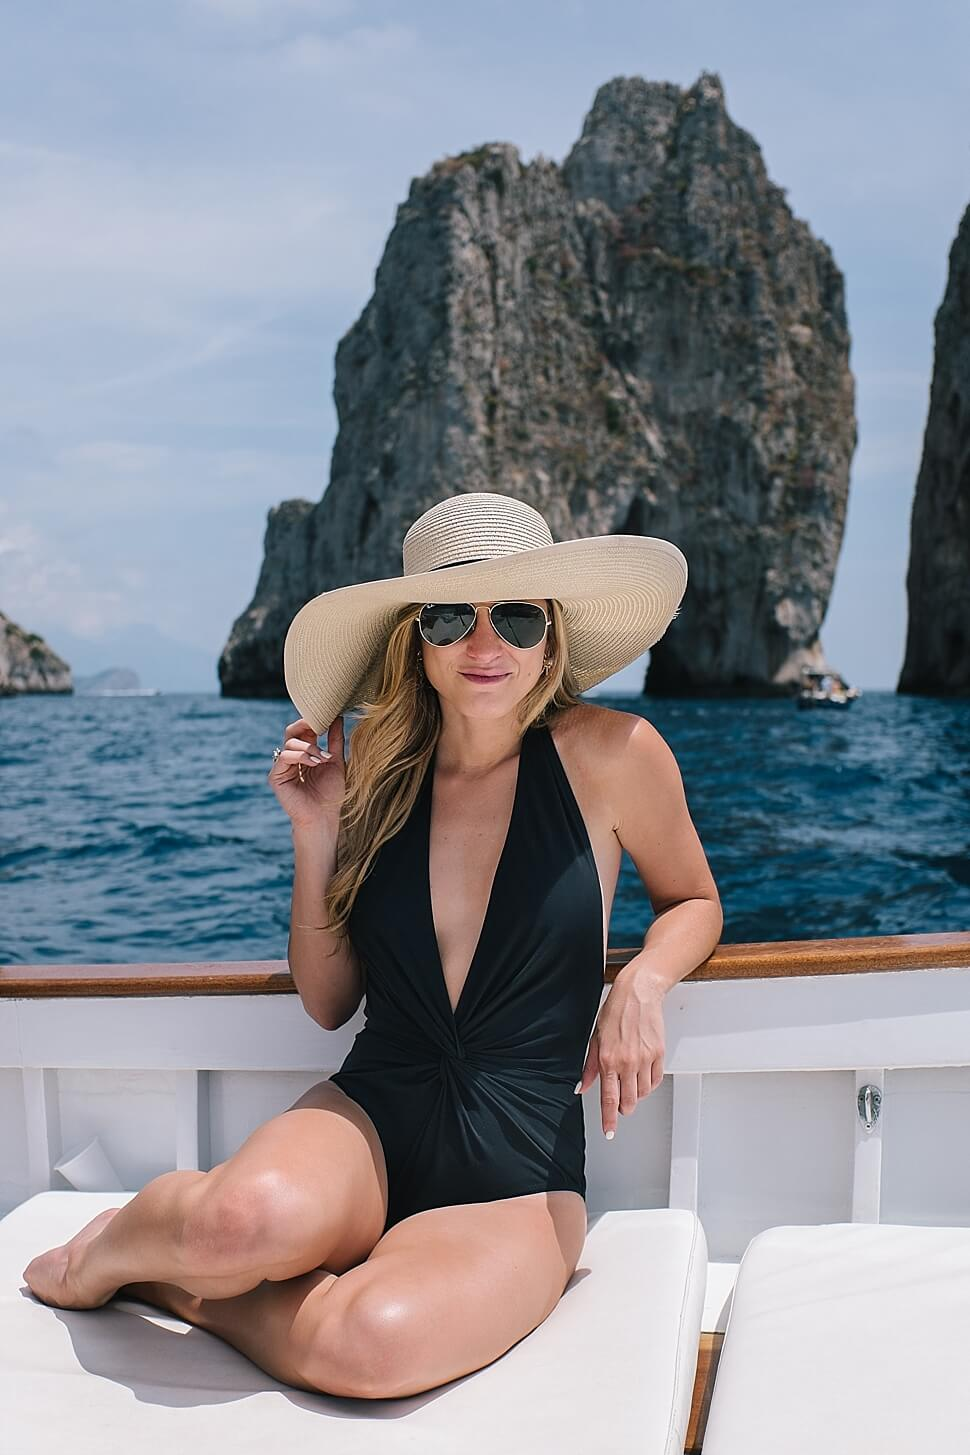 abb9adbc95689 brighton keller wearing black plunge front one piece on a private boat in capri  island italy